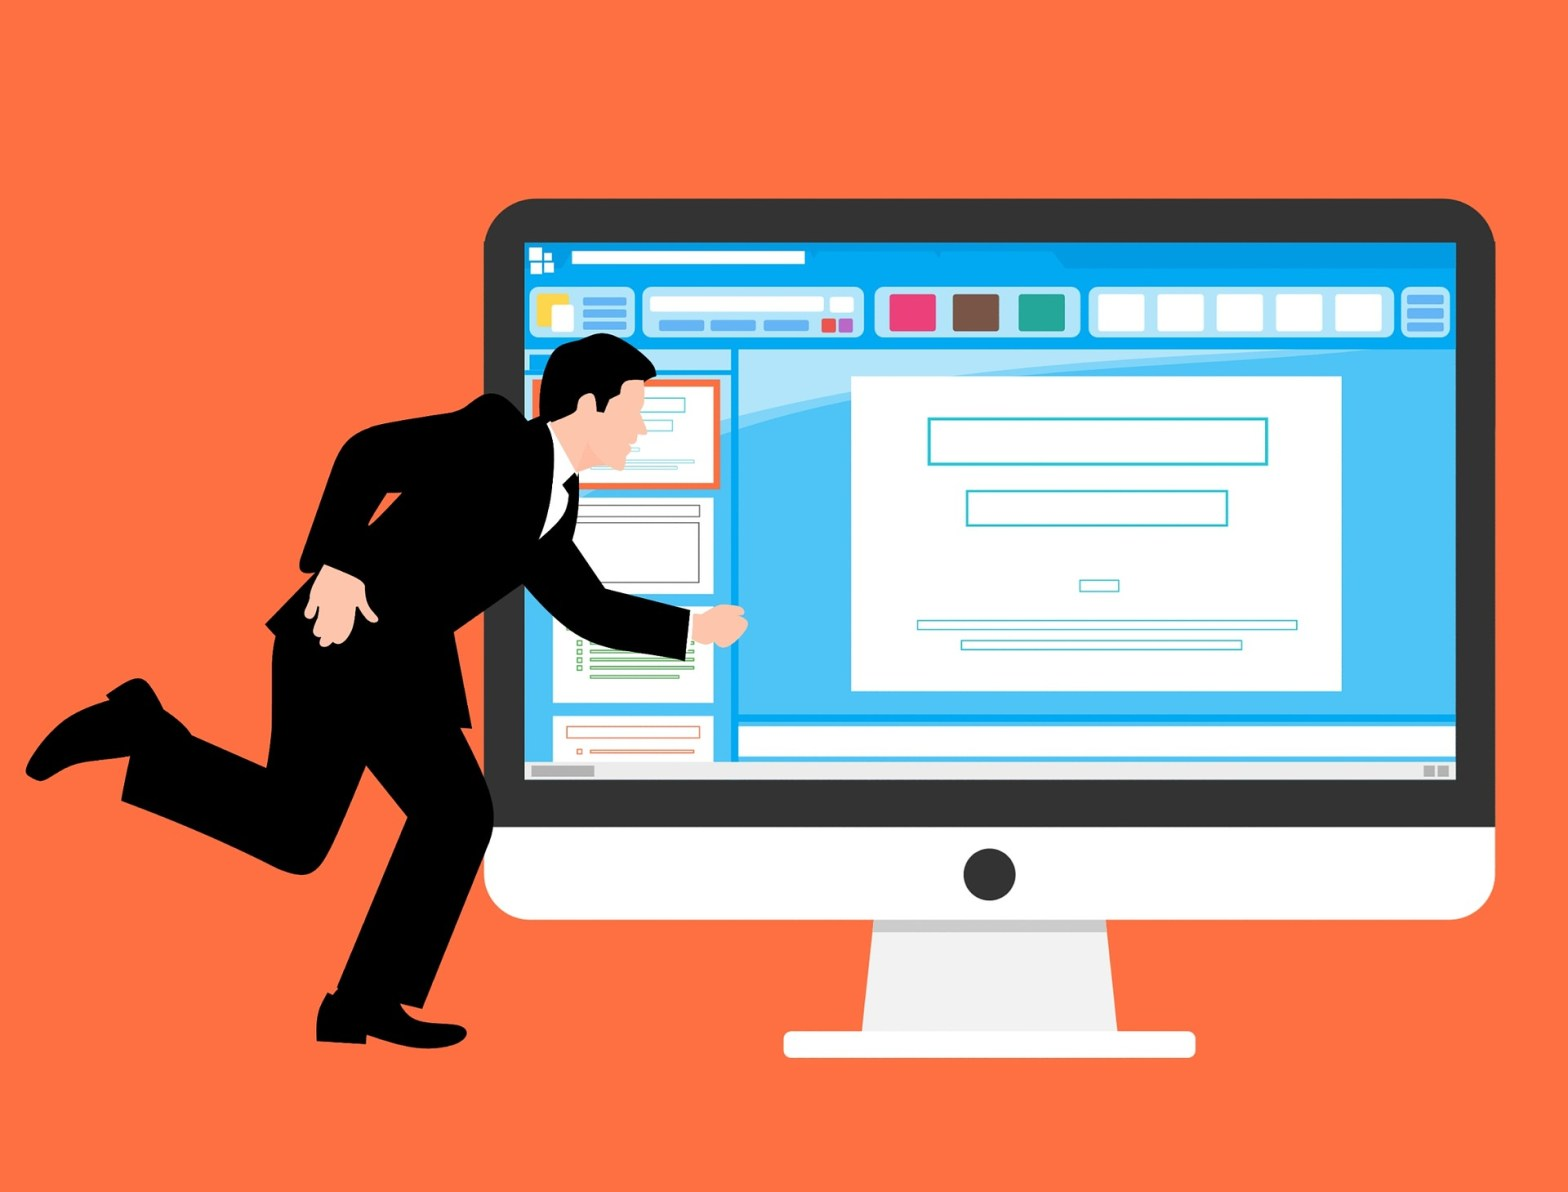 graphic of a person in a suit running in front of a computer monitor